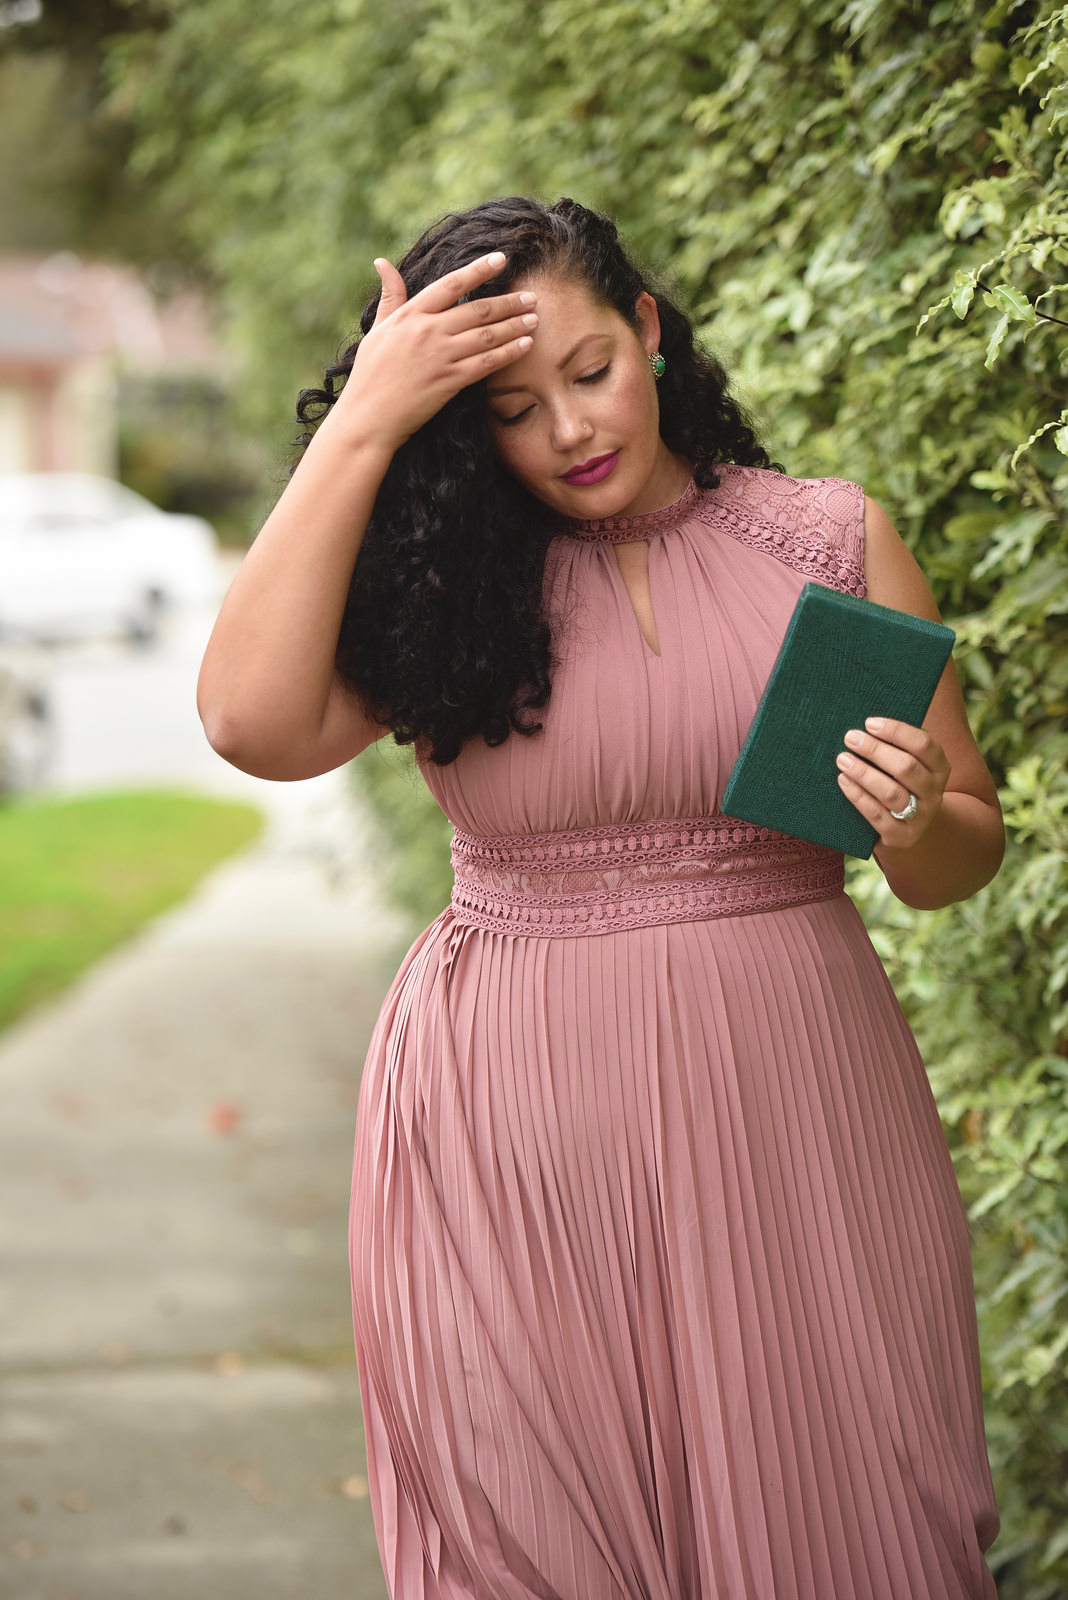 Girl With Curves blogger Tanesha Awasthi wears a lace detail plus size maxi dress and emerald green accessories.